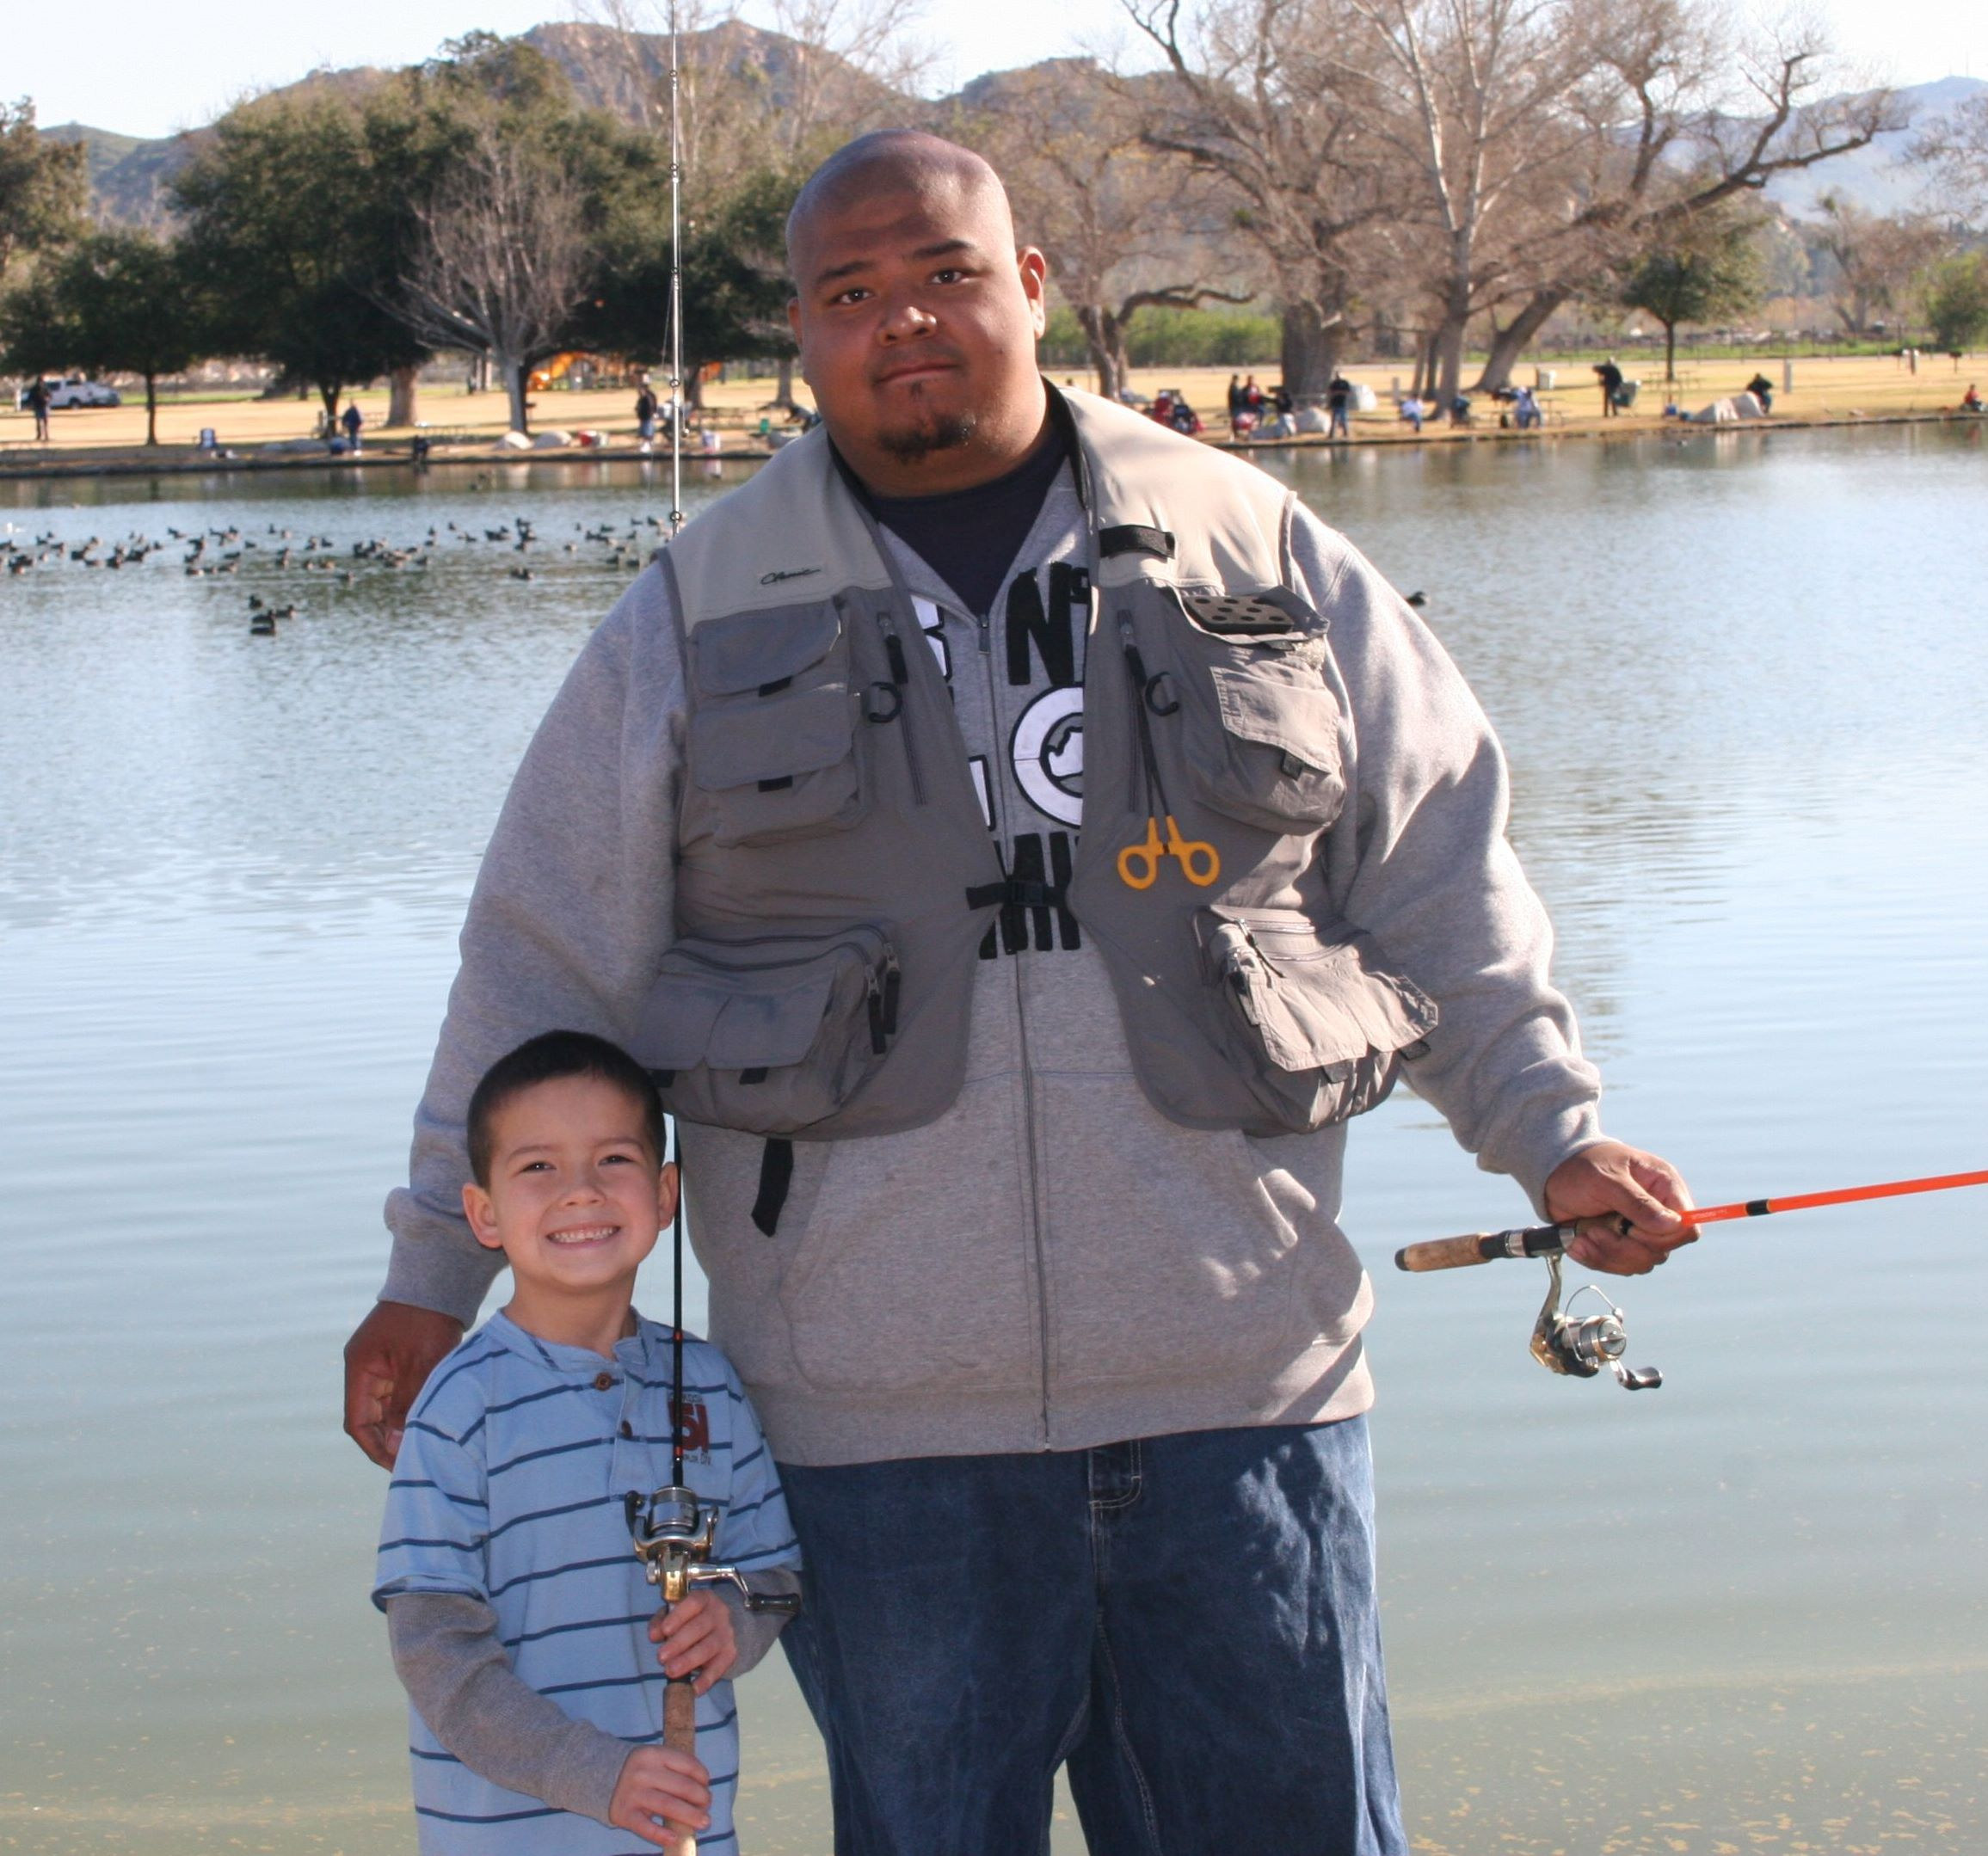 Dad w/son at RJ Lake fishing